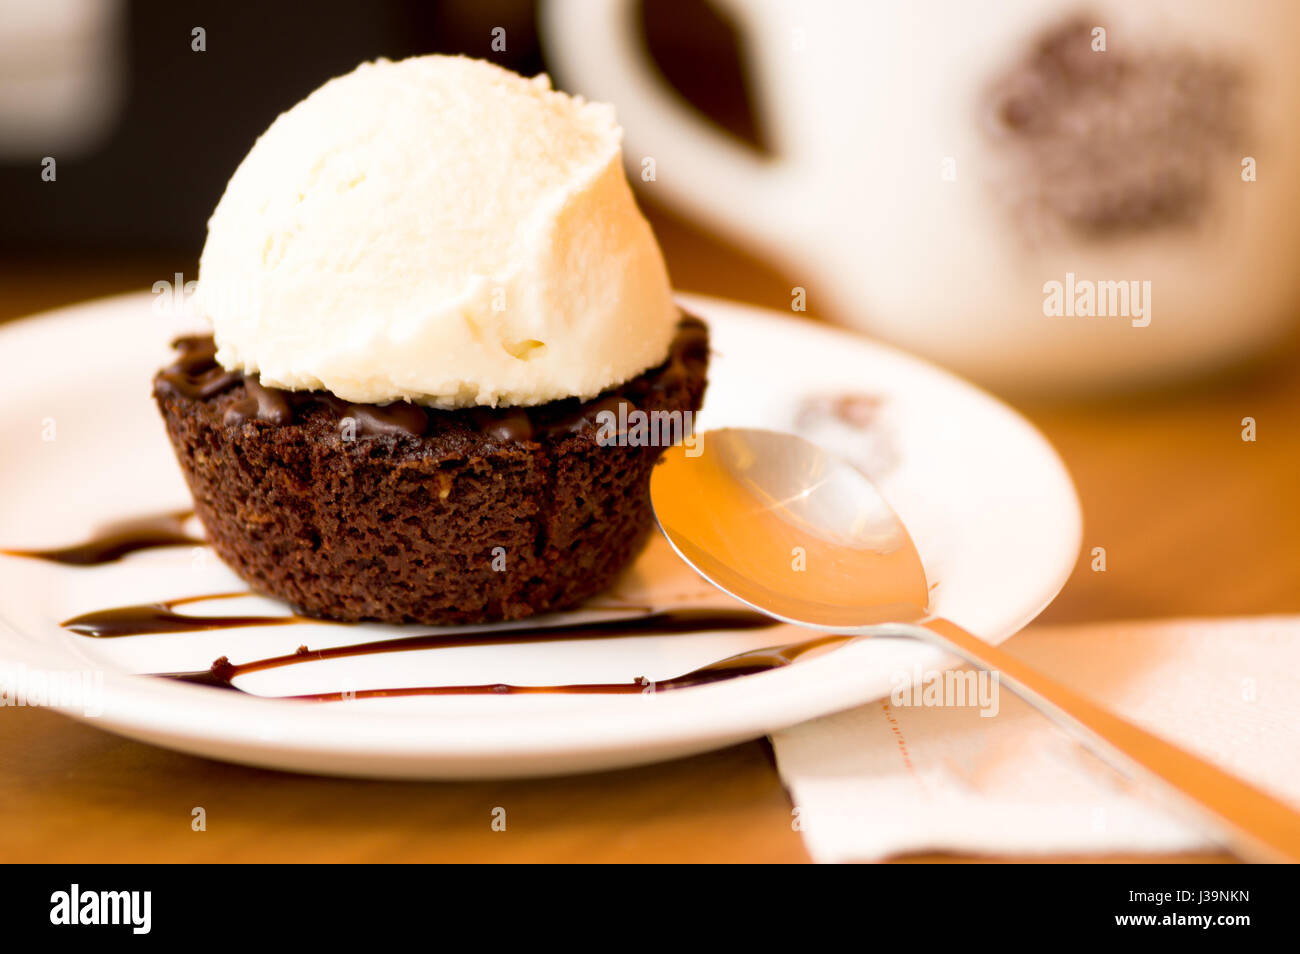 Close Up Of A Delicious Icecream On Top Of A Brownie With A